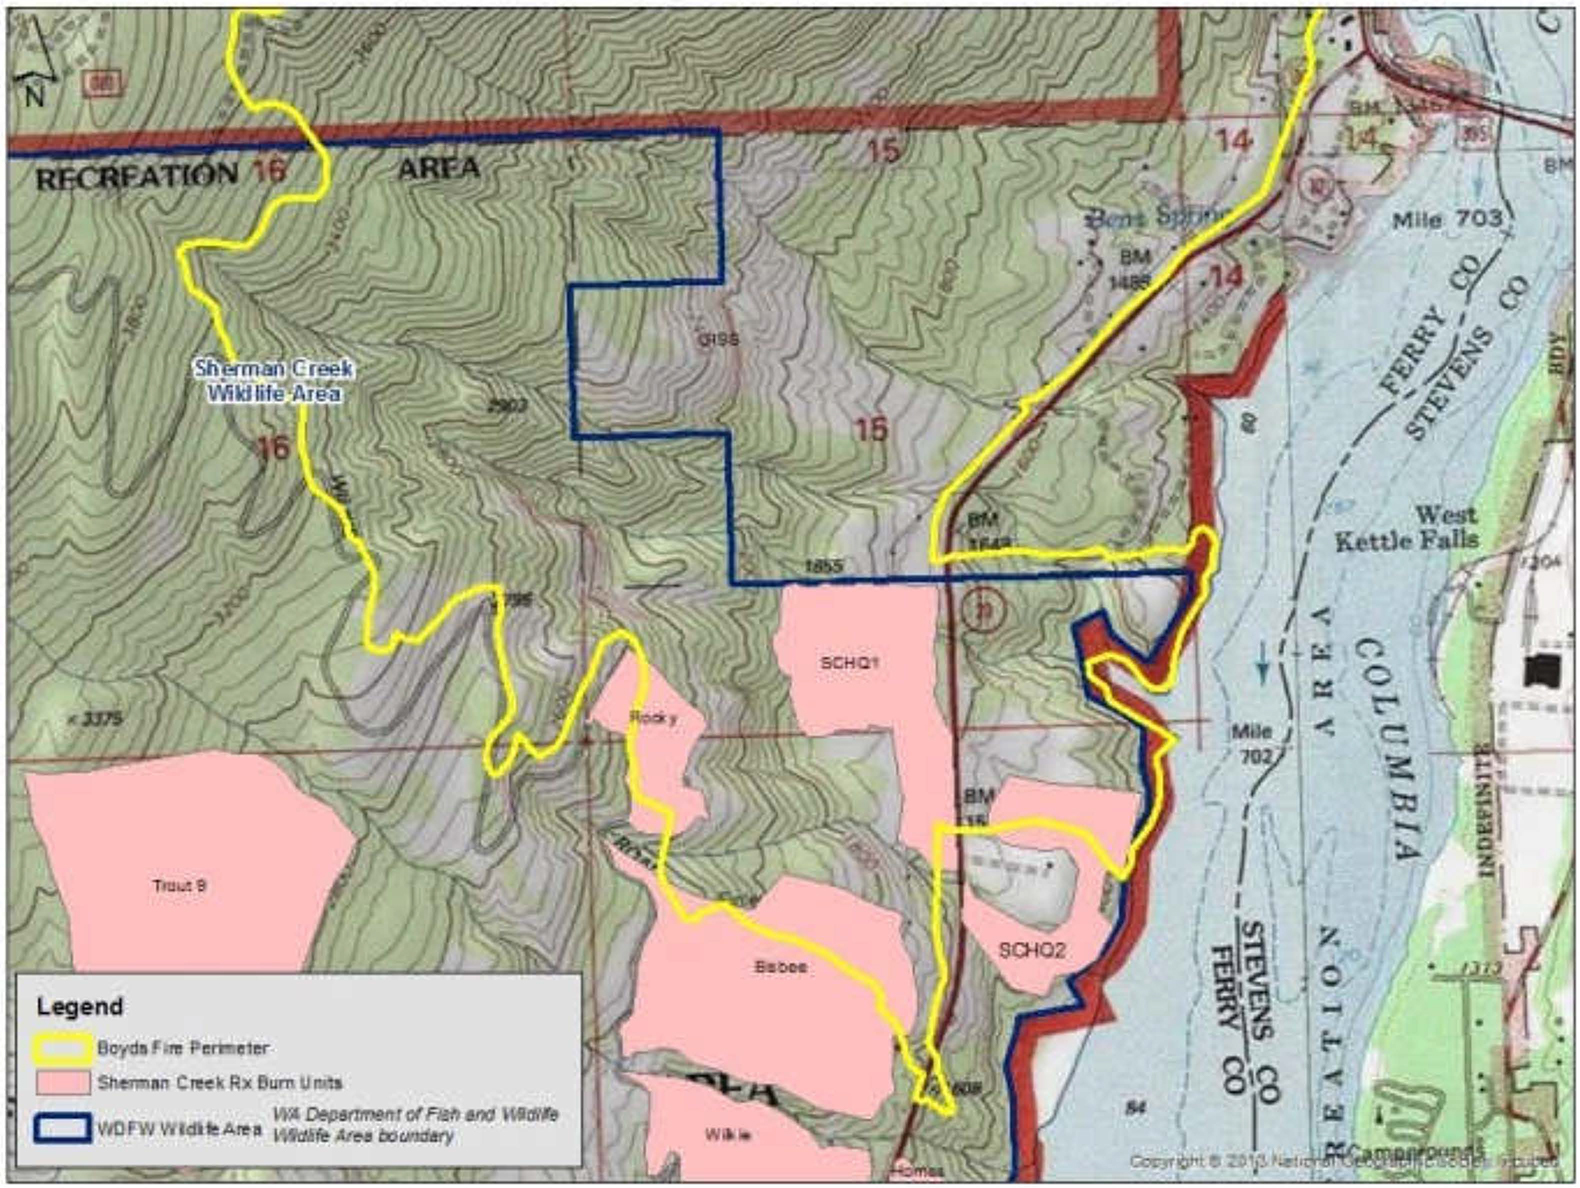 The yellow line in the map above indicates Boyds Fire's footprint, it burned 4,712 acres in total. The pink areas show where the Washington Department of Fish and Wildlife previously treated the forest with prescribed burns. The blue line is the wildlife area boundary. (Washington Department of Fish and Wildlife image)